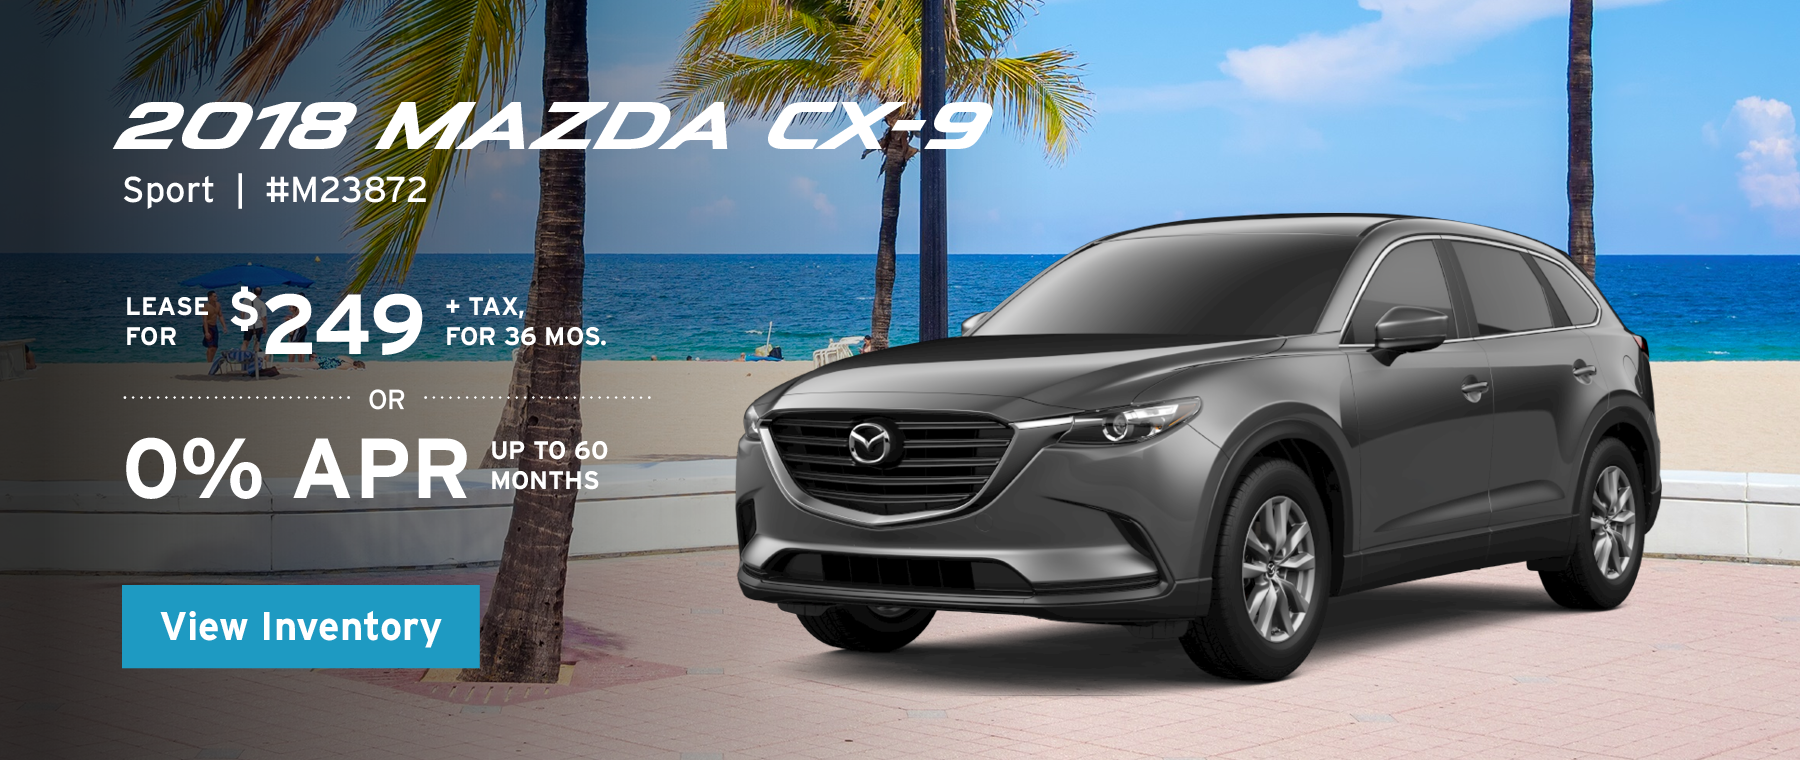 Lease the 2018 Mazda CX-9 Sport for $139, plus tax for 36 months, or 0% APR up to 60 months.